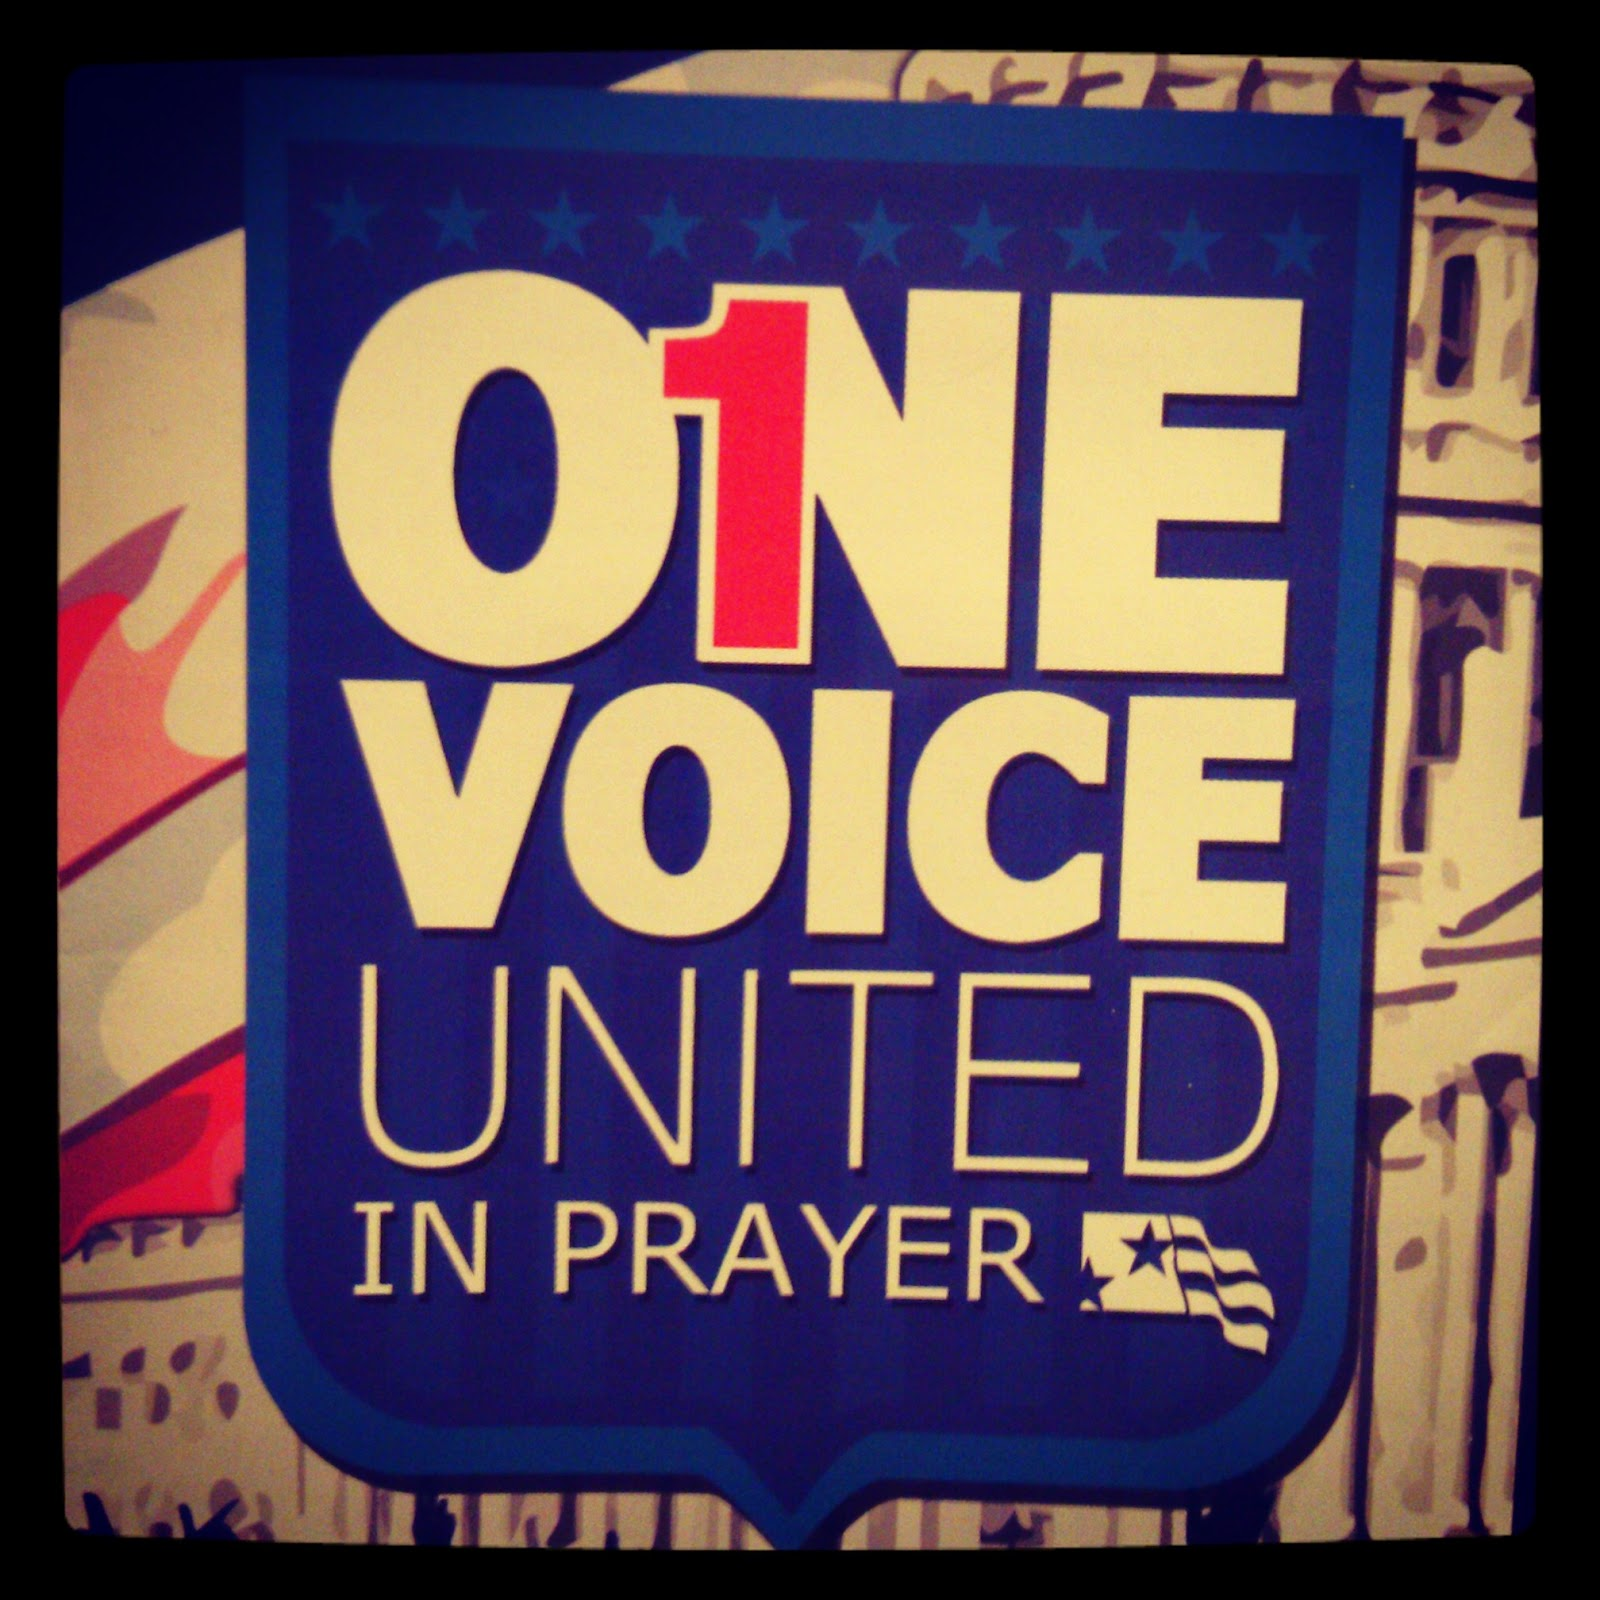 National Day of Prayer 2014 - One Voice United in Prayer